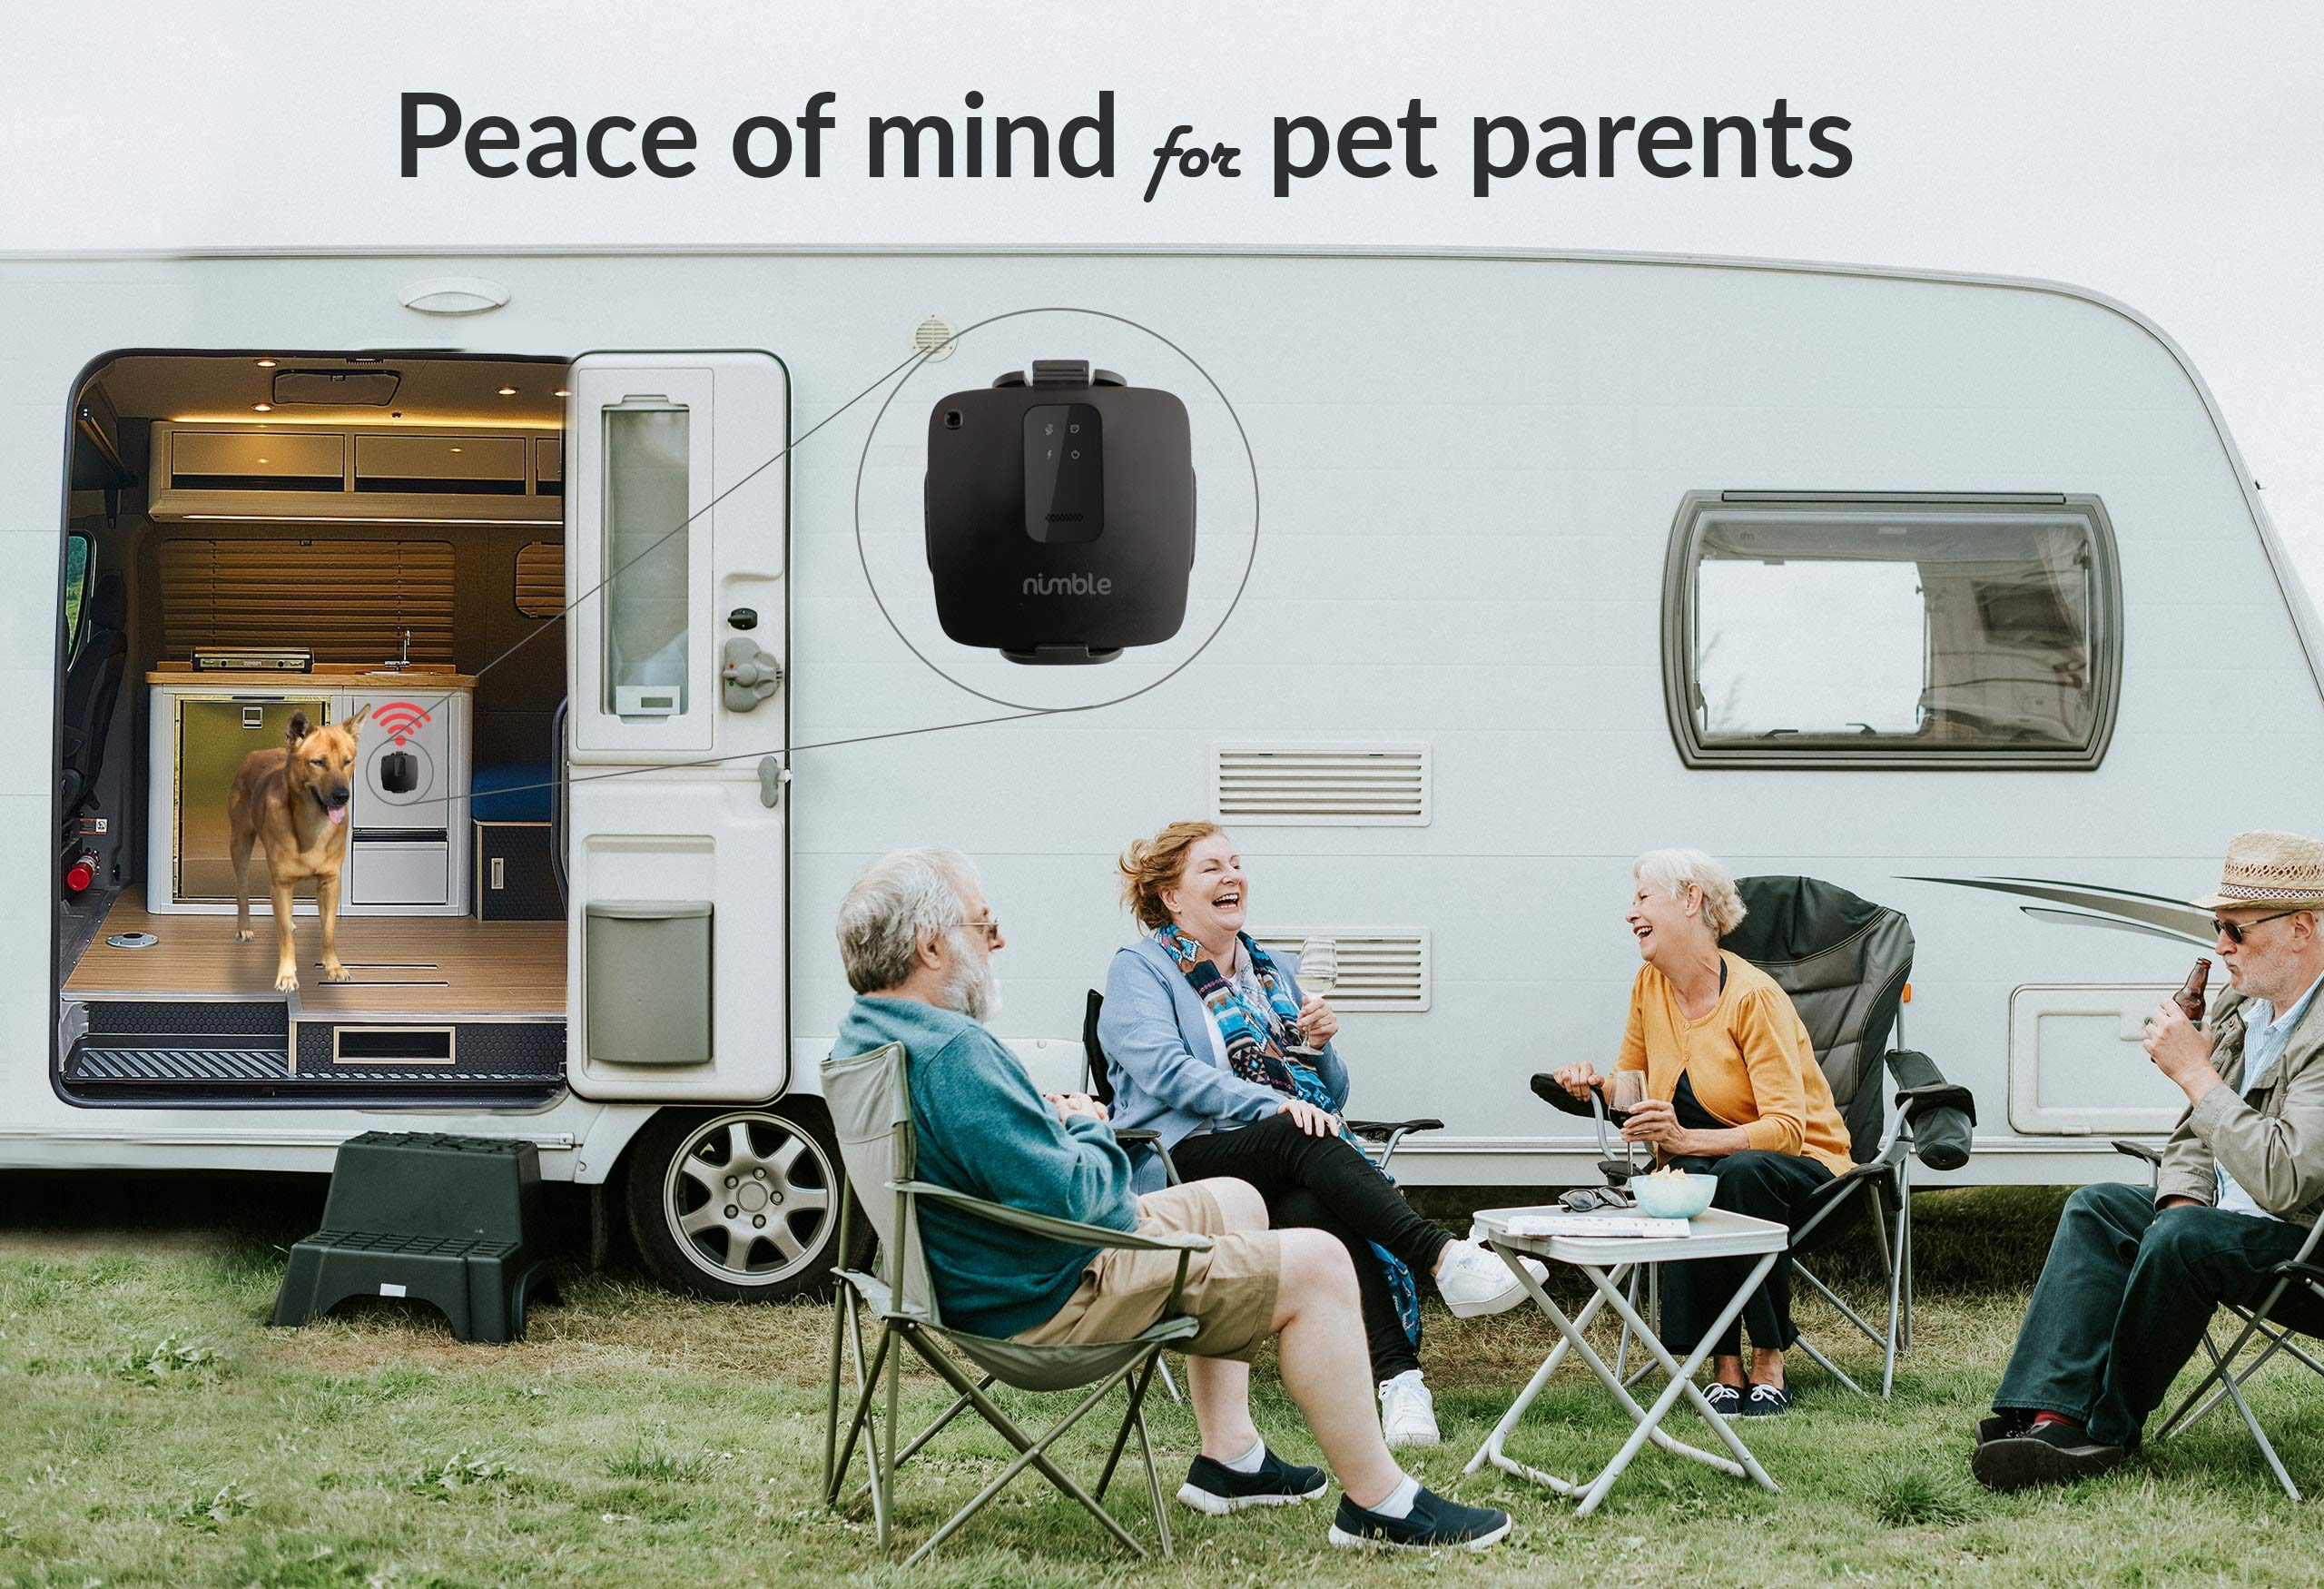 RV PetSafety Pet Environment Temperature monitor - No WiFi needed - works on 3G AT&T / T-mobile Cellular networks. Monitor pet's environment temperature in real time 24x7 by Nimble Wireless (Image #2)